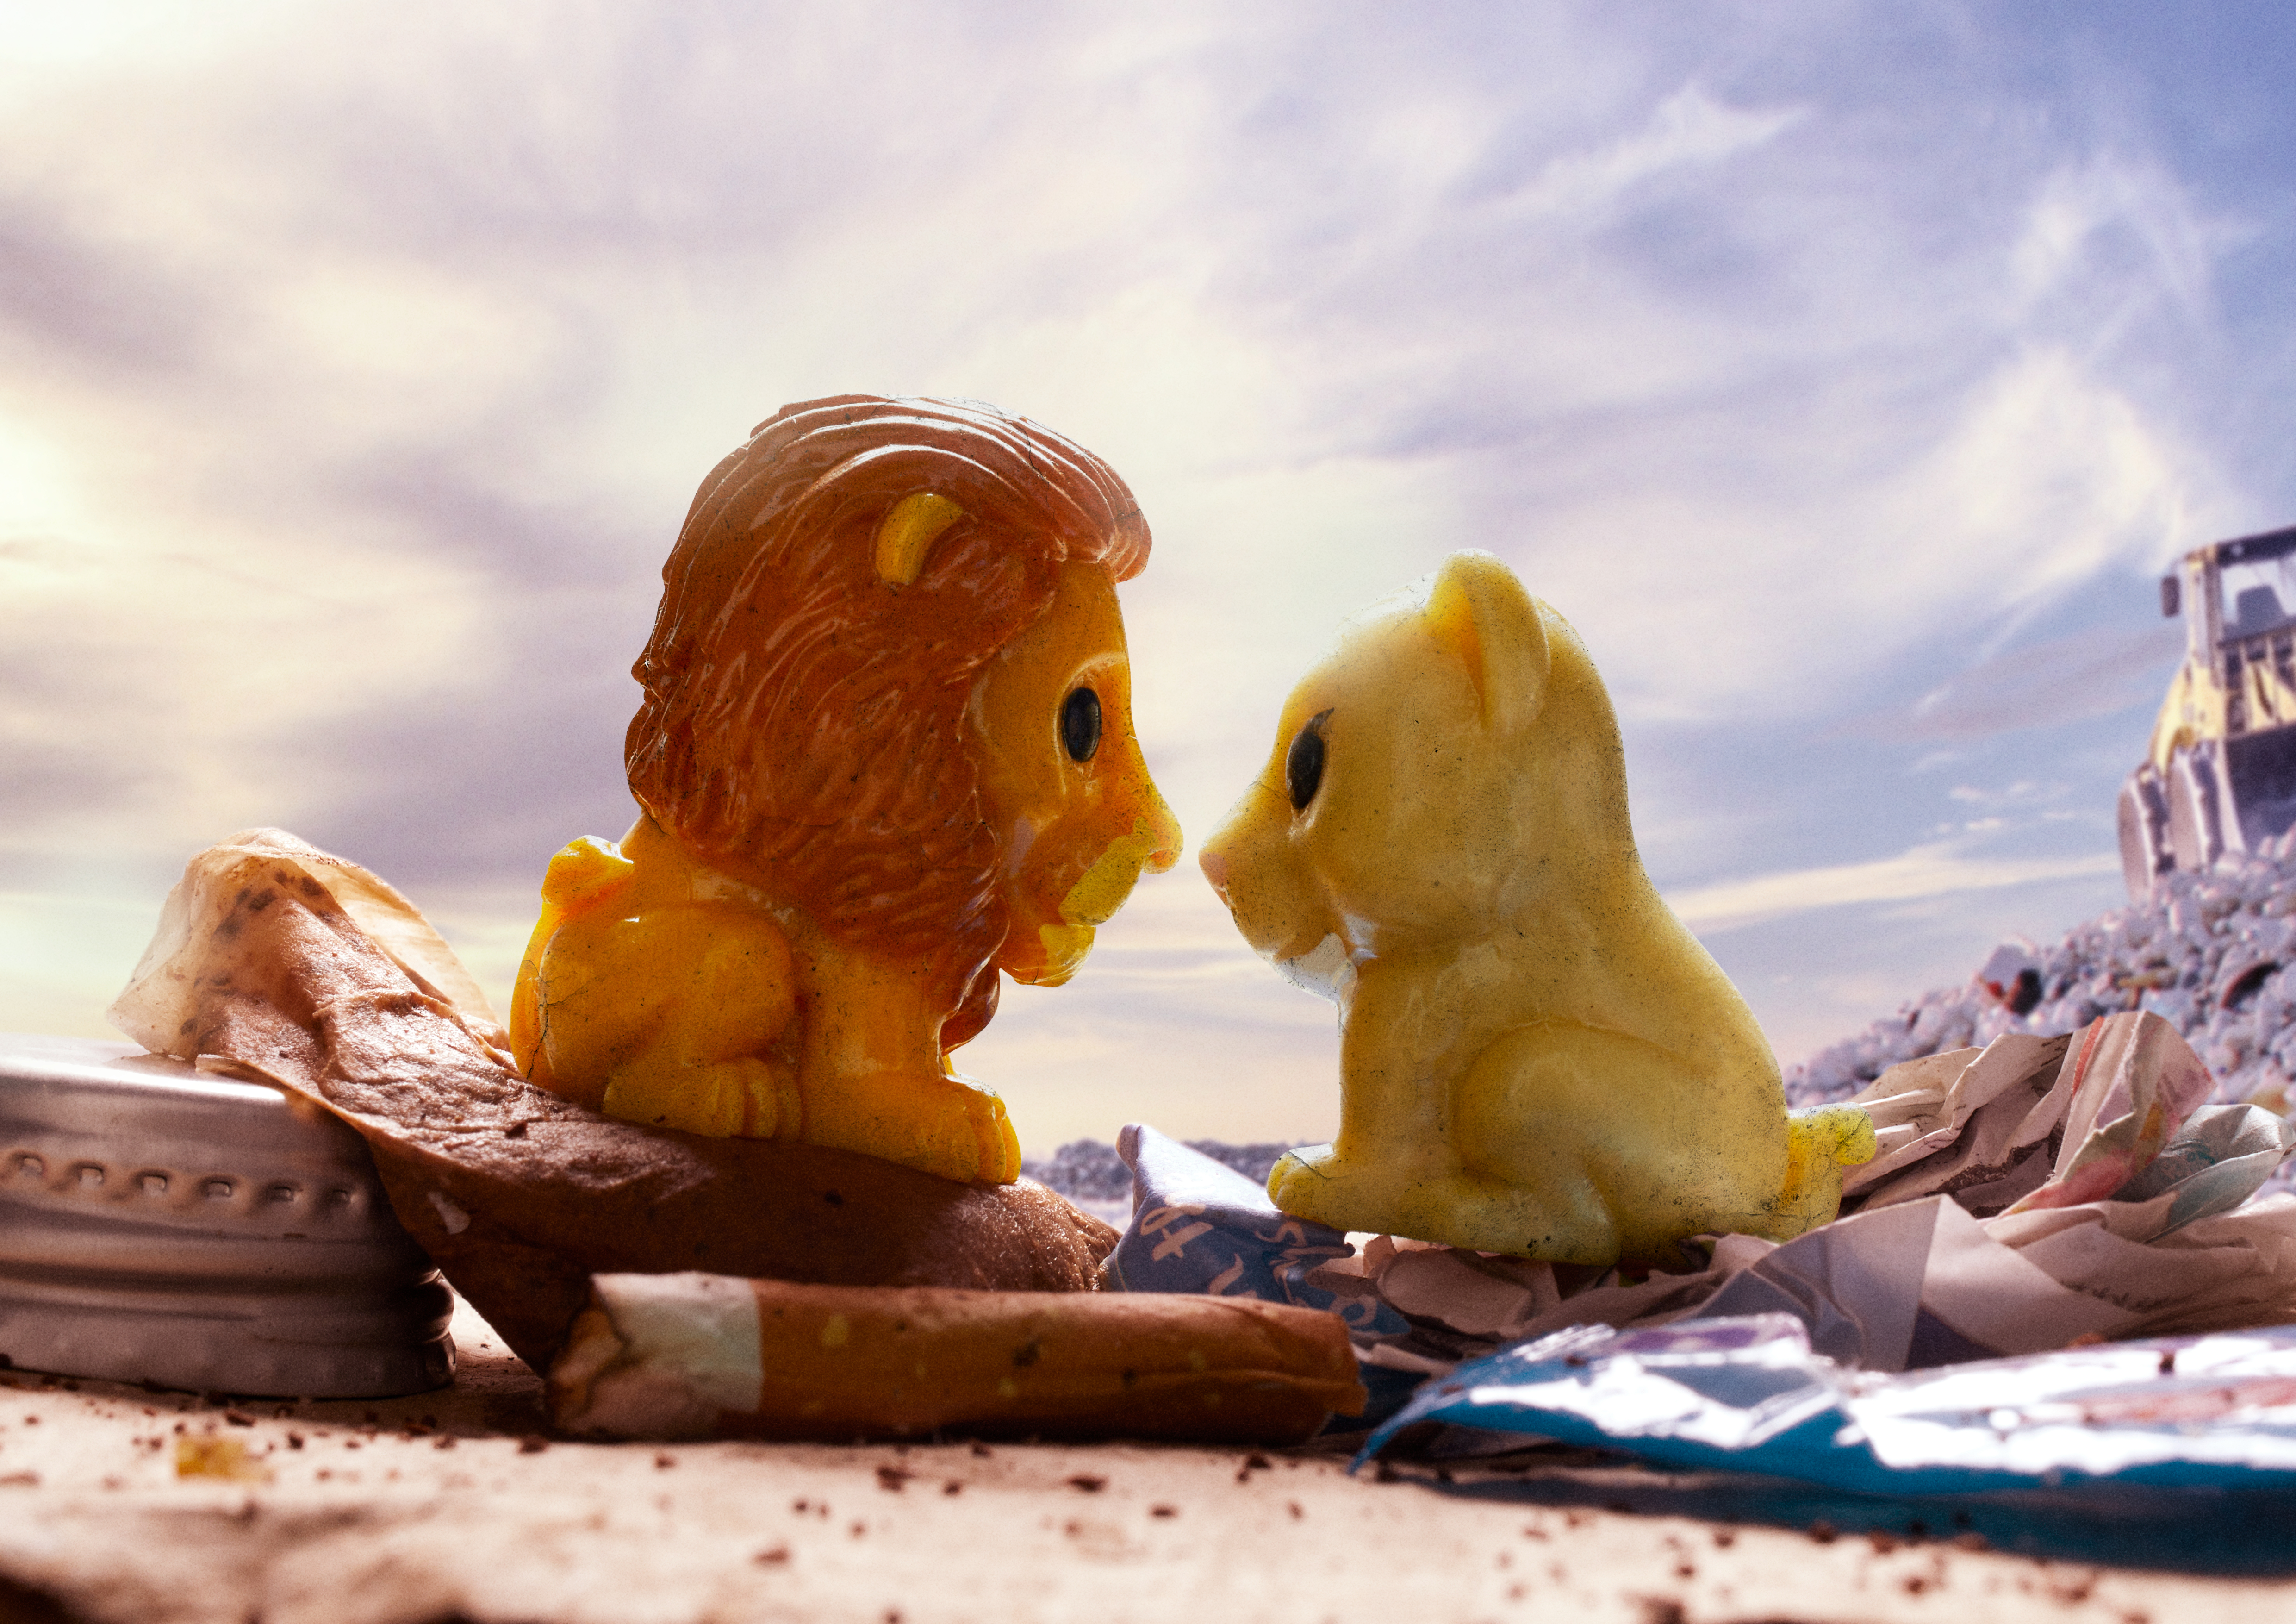 We Recreated Scenes From The Lion King With Woolworths Lion King Ooshies In Their Natural Habitat- Landfill